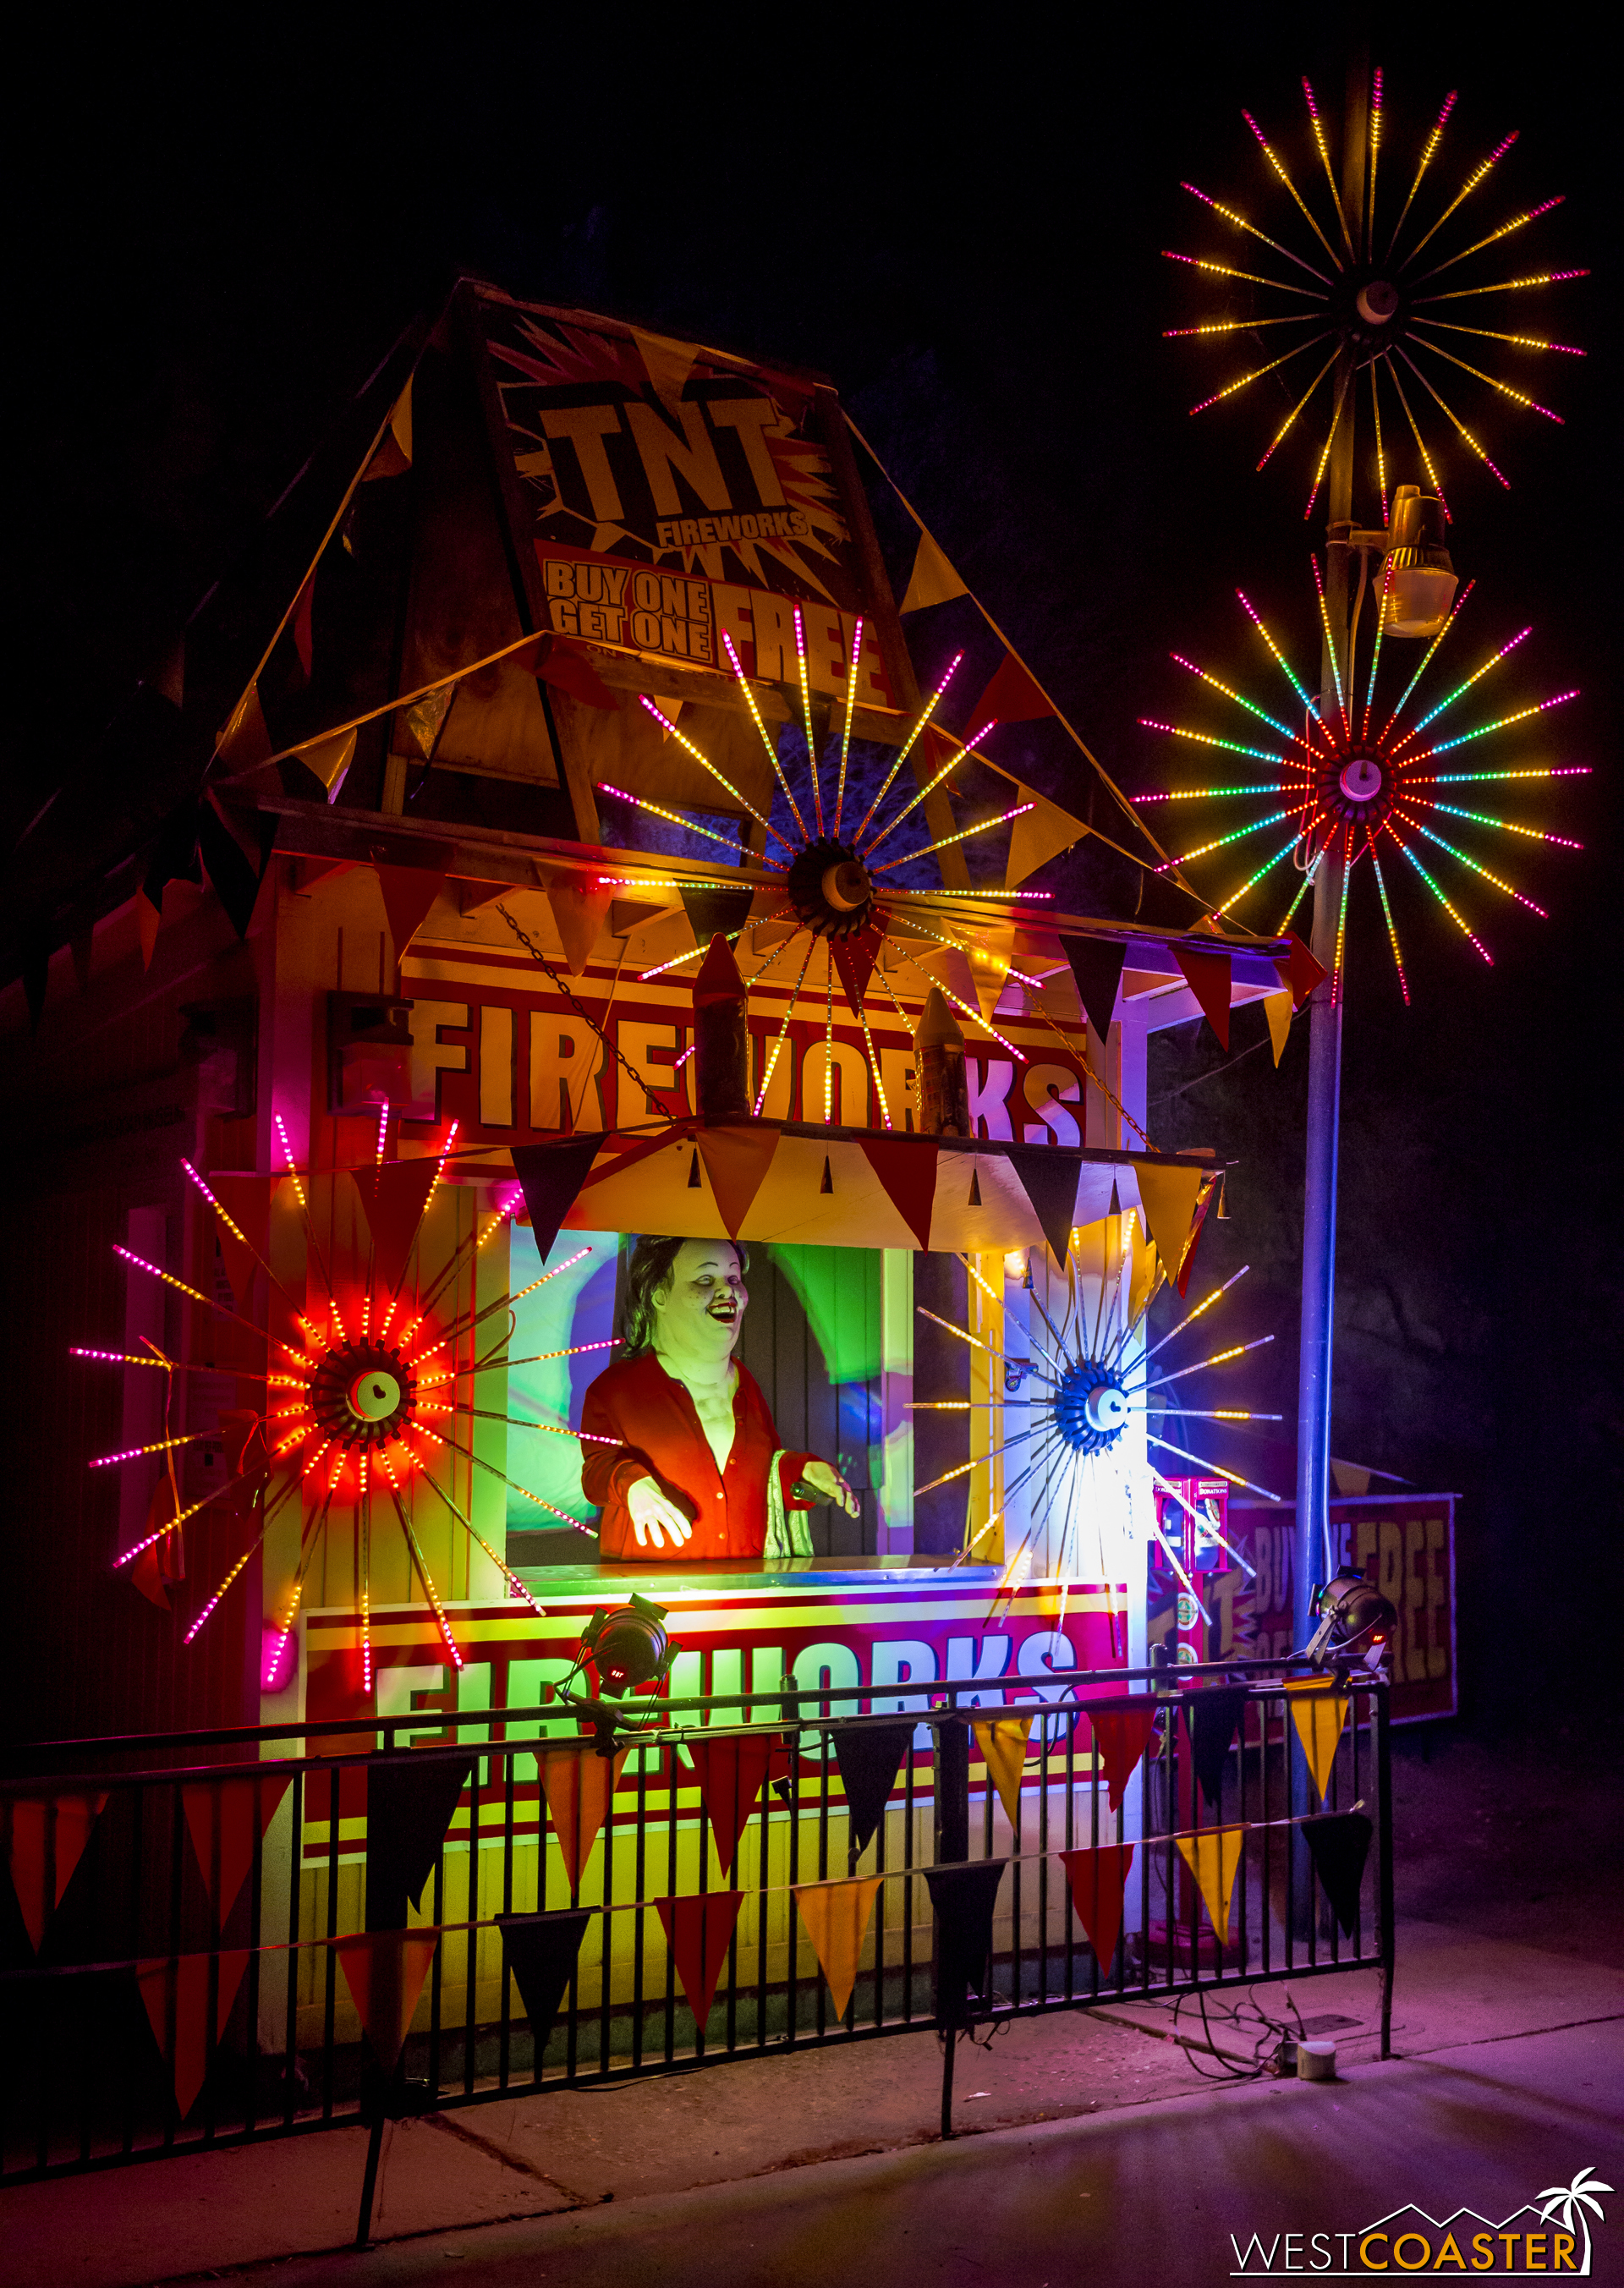 Rosie O'Donnell selling fireworks is a frightening sight indeed!